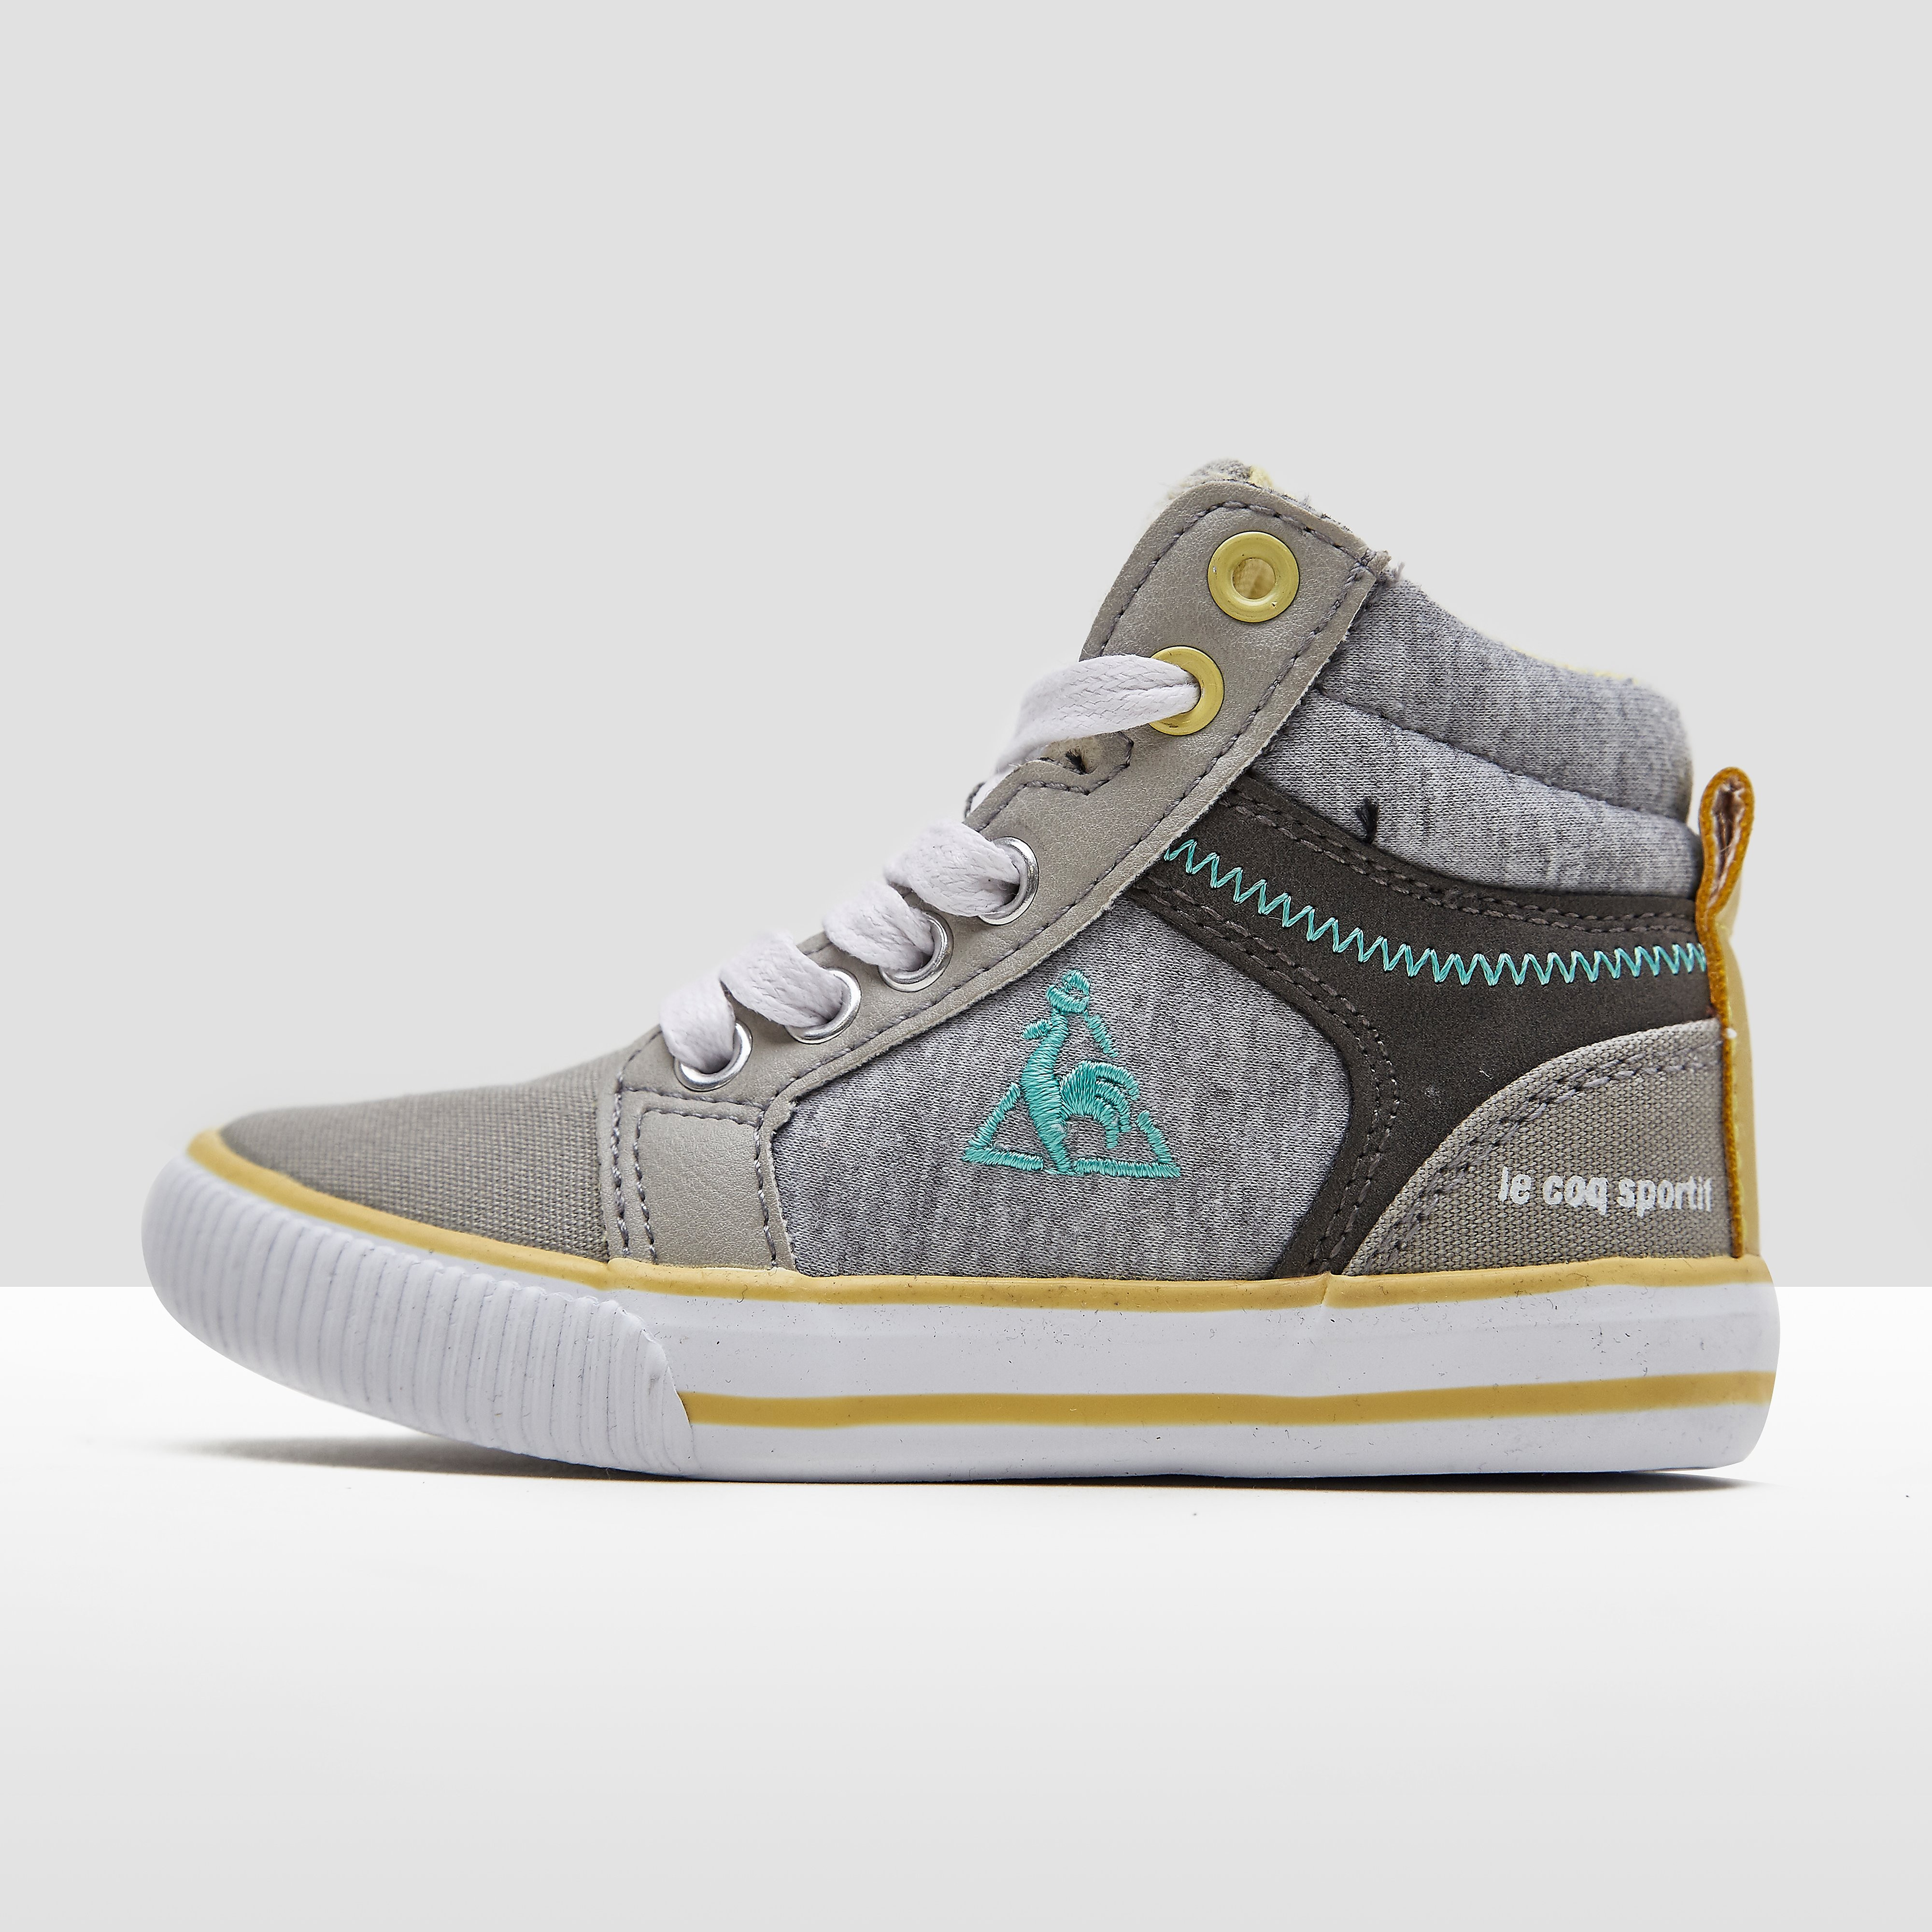 LE COQ SPORTIF MELODIE MID SNEAKERS GRIJS BABY